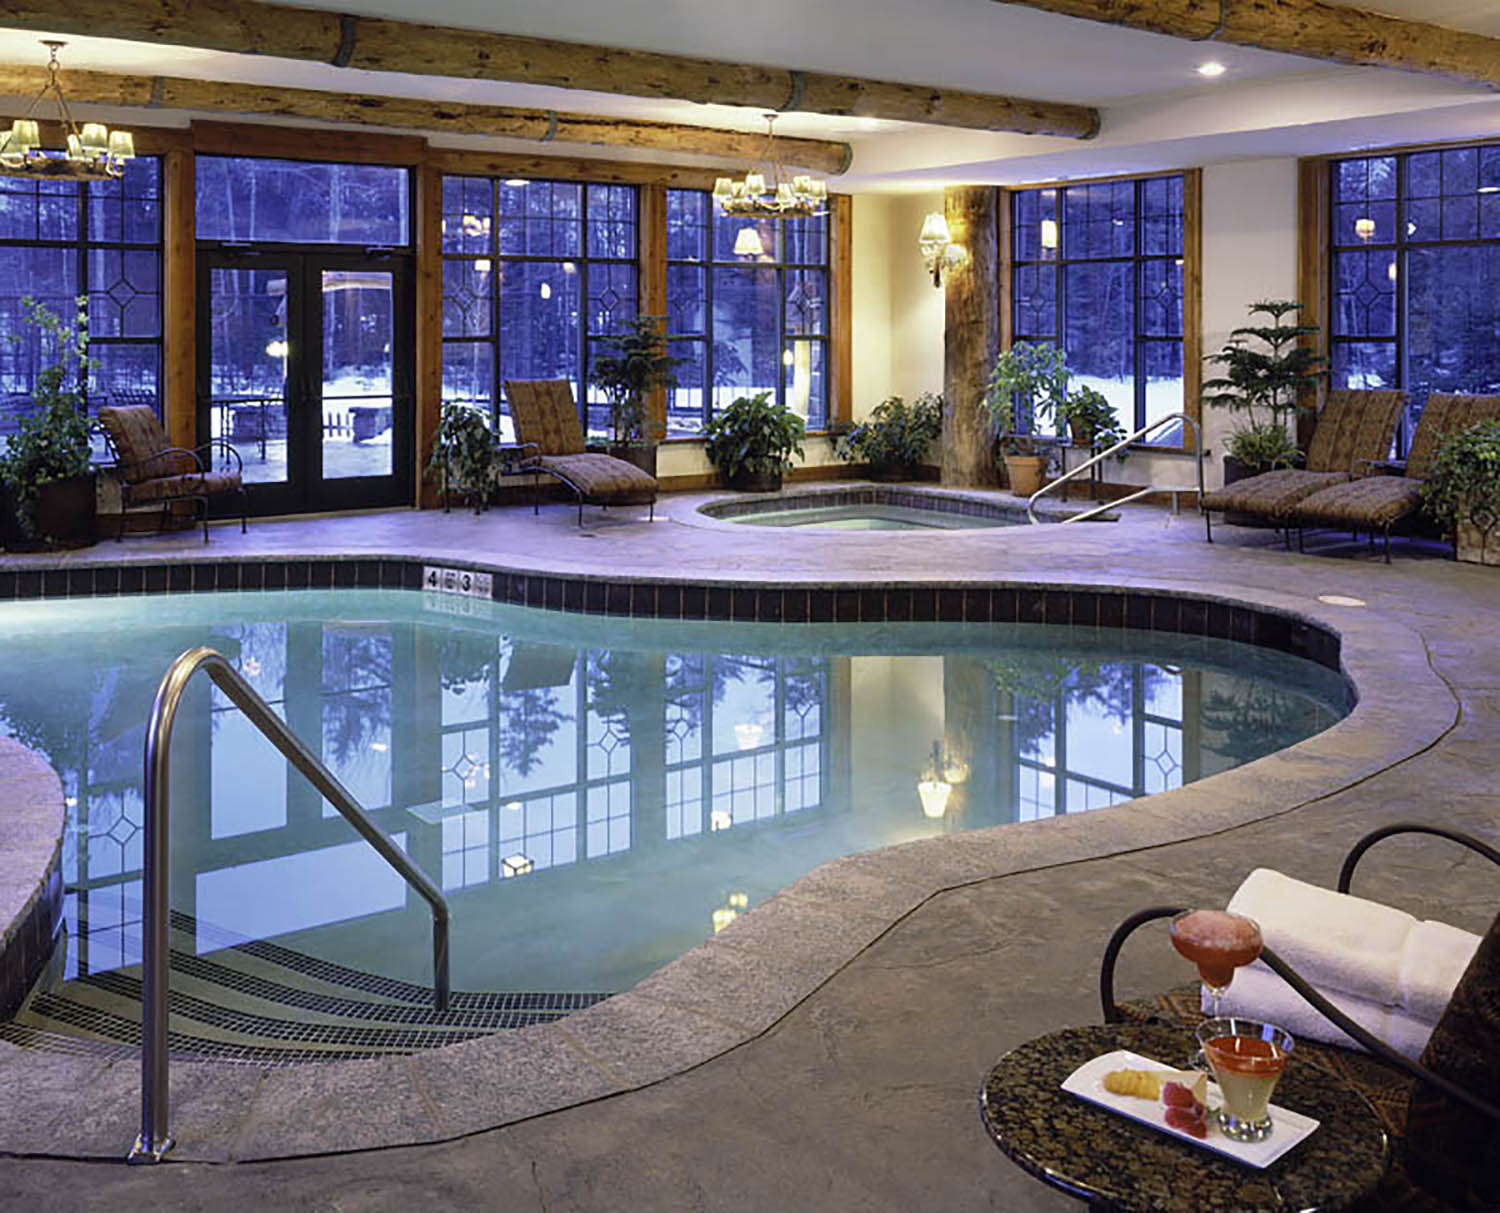 The indoor pool and Jacuzzi.